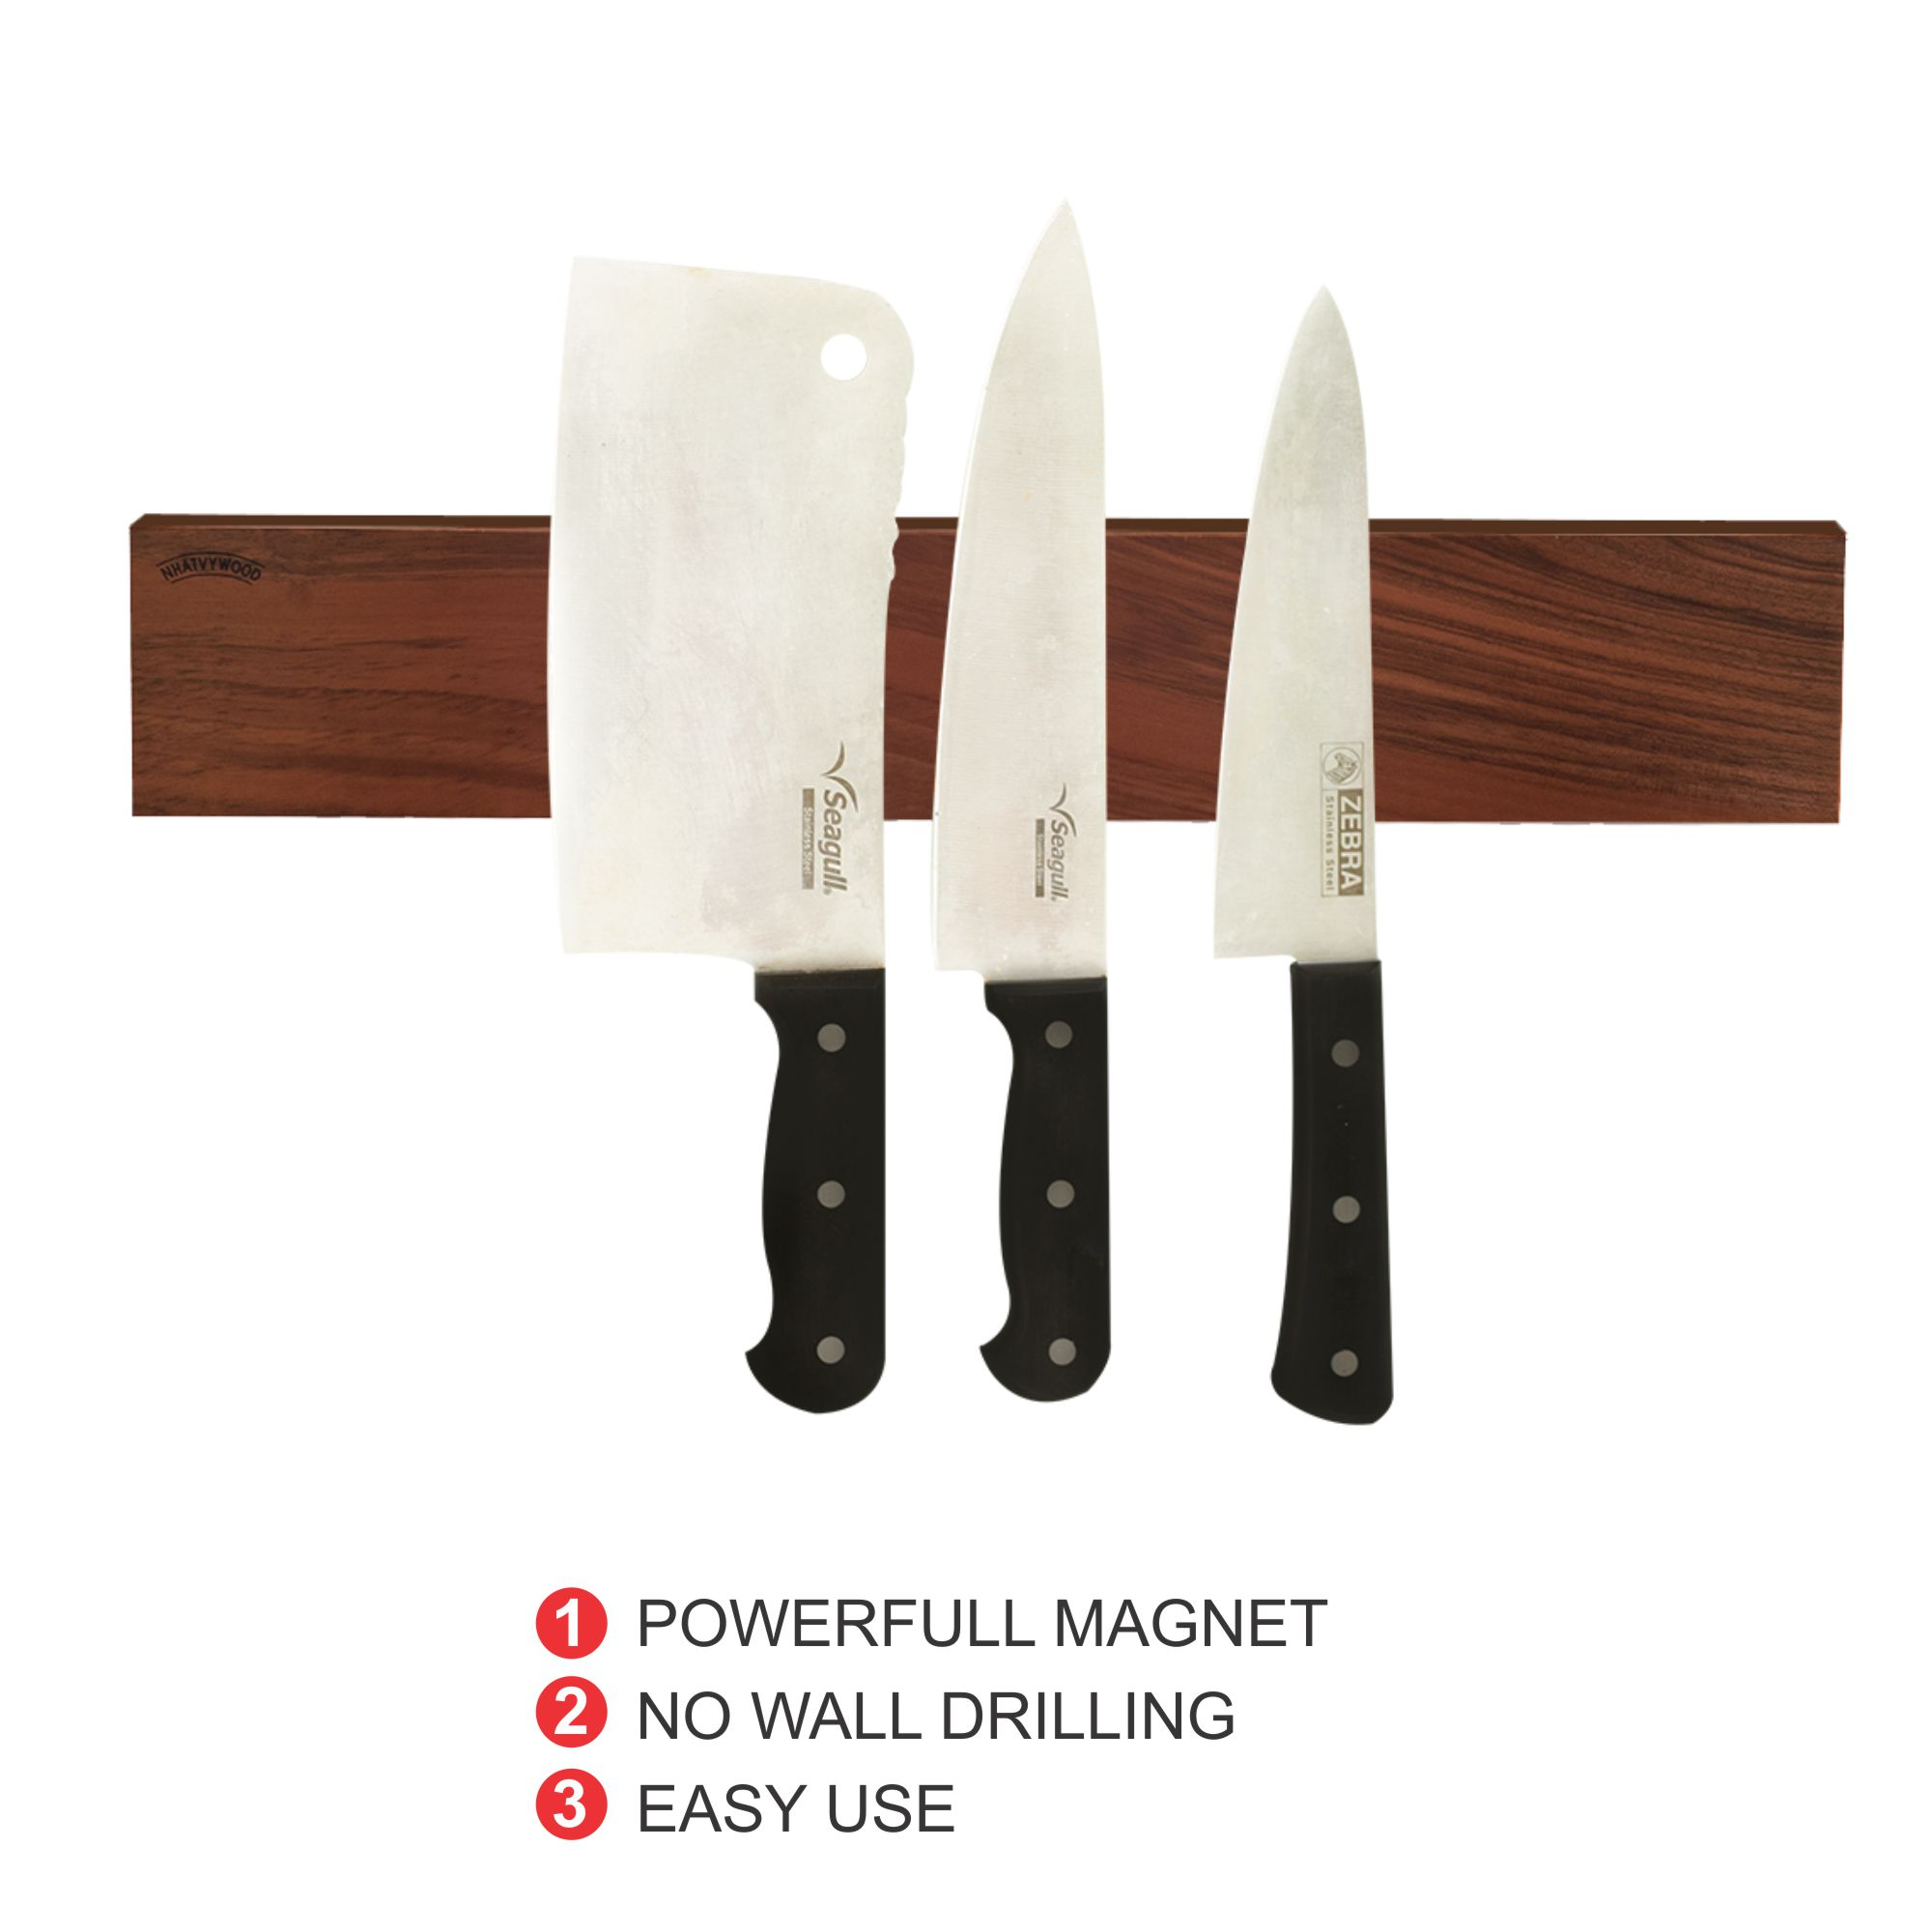 Strong 16'' walnut magnetic knife holder with 3M VHB Adhesive